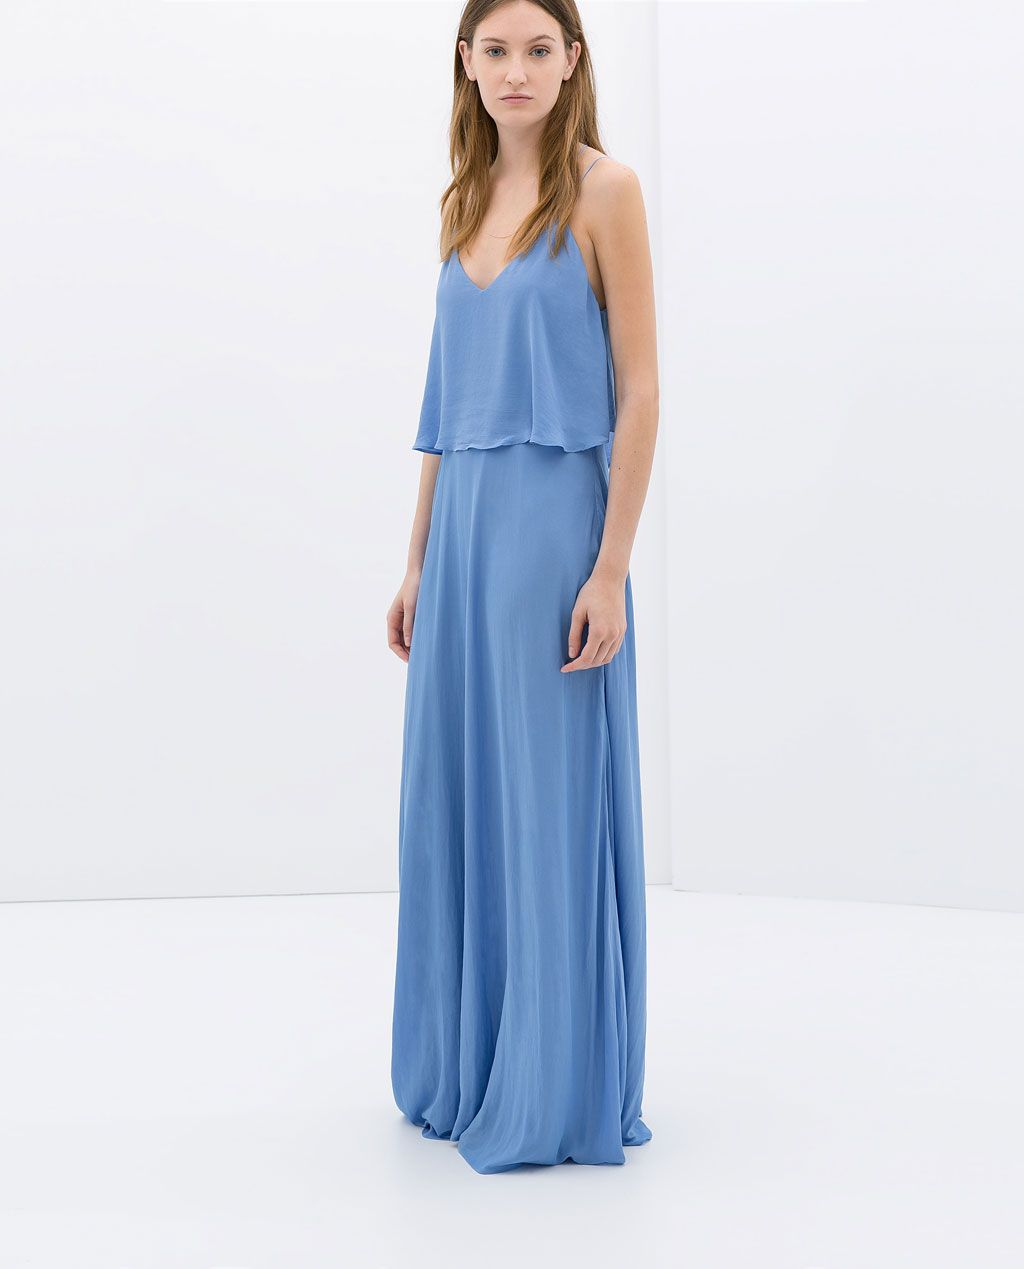 LONG DRESS WITH LOW BACK - Dresses - WOMAN  ZARA United States